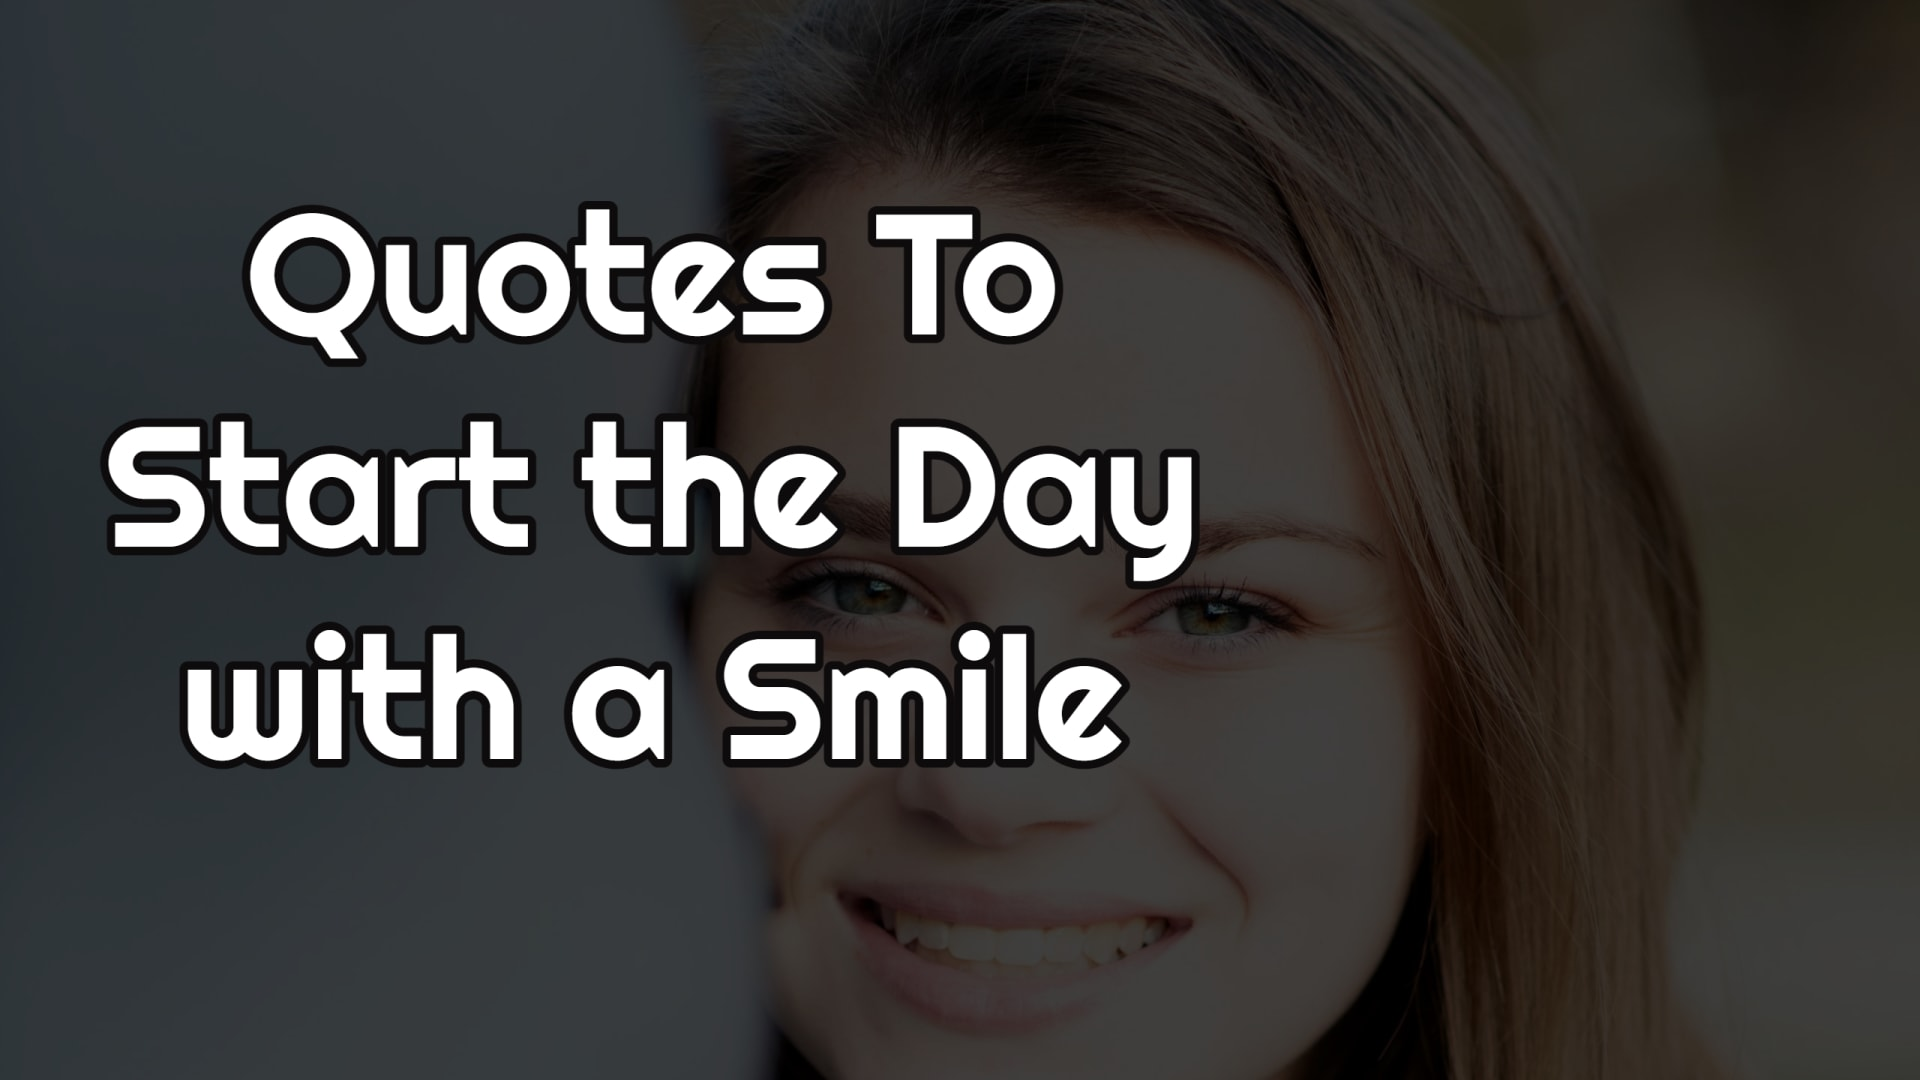 Quotes To Start the Day with a Smile